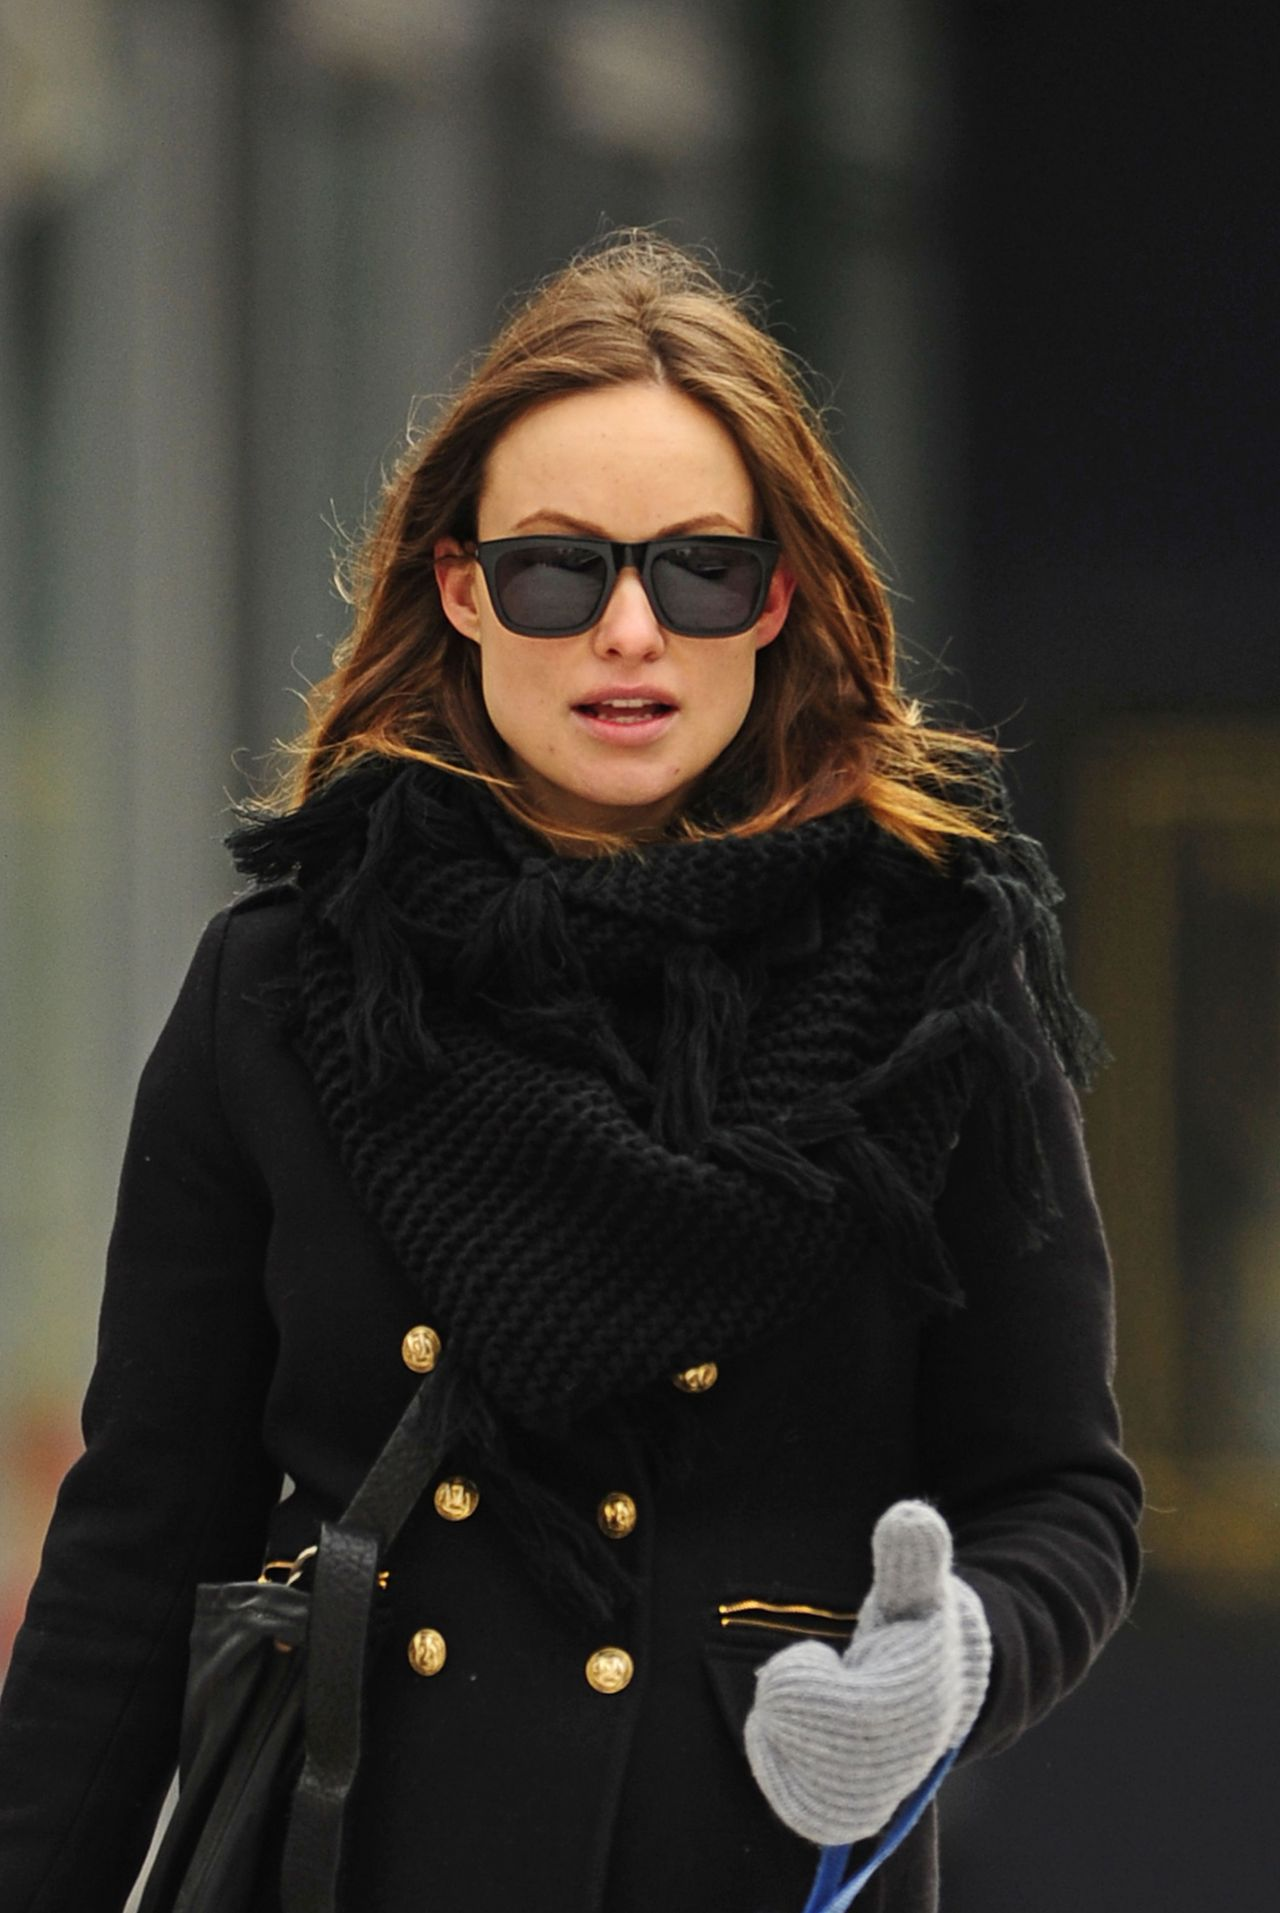 Olivia Wilde Winter Street Style - New York City, March 2014